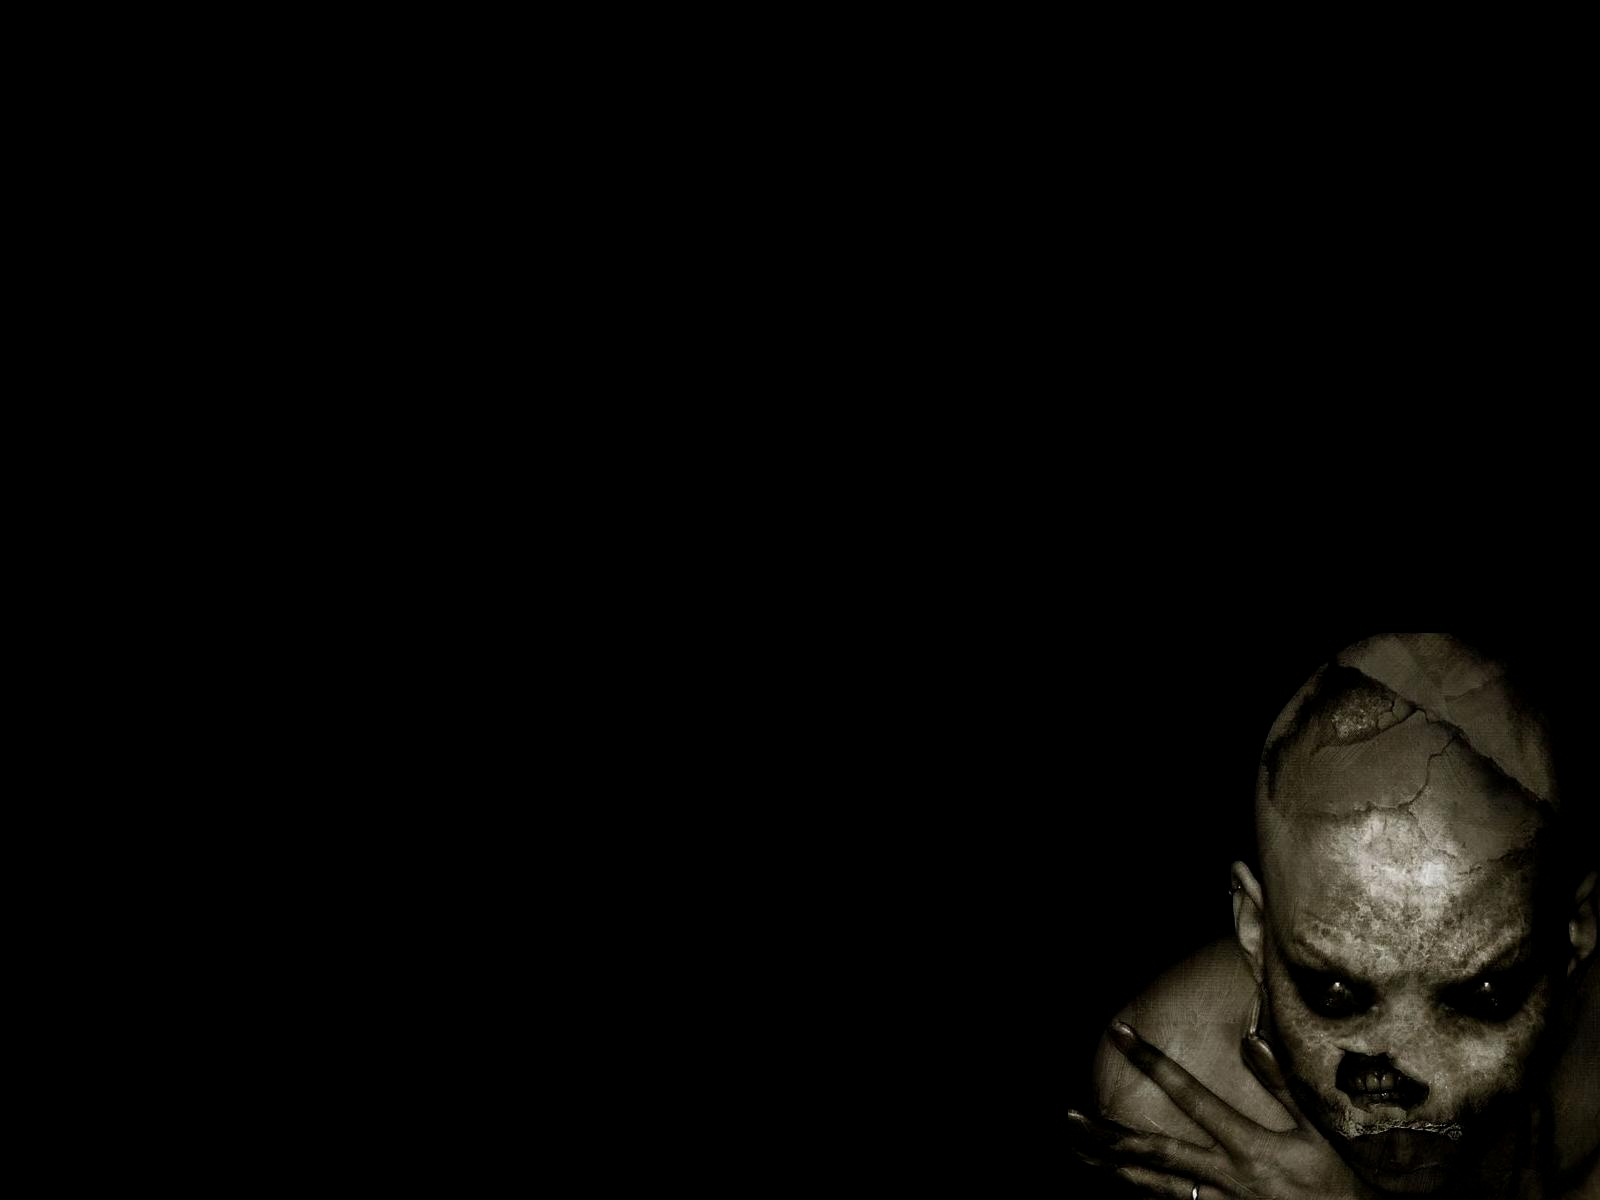 Scary Face, of scary Wallpaper HD | Scary Wallpapers